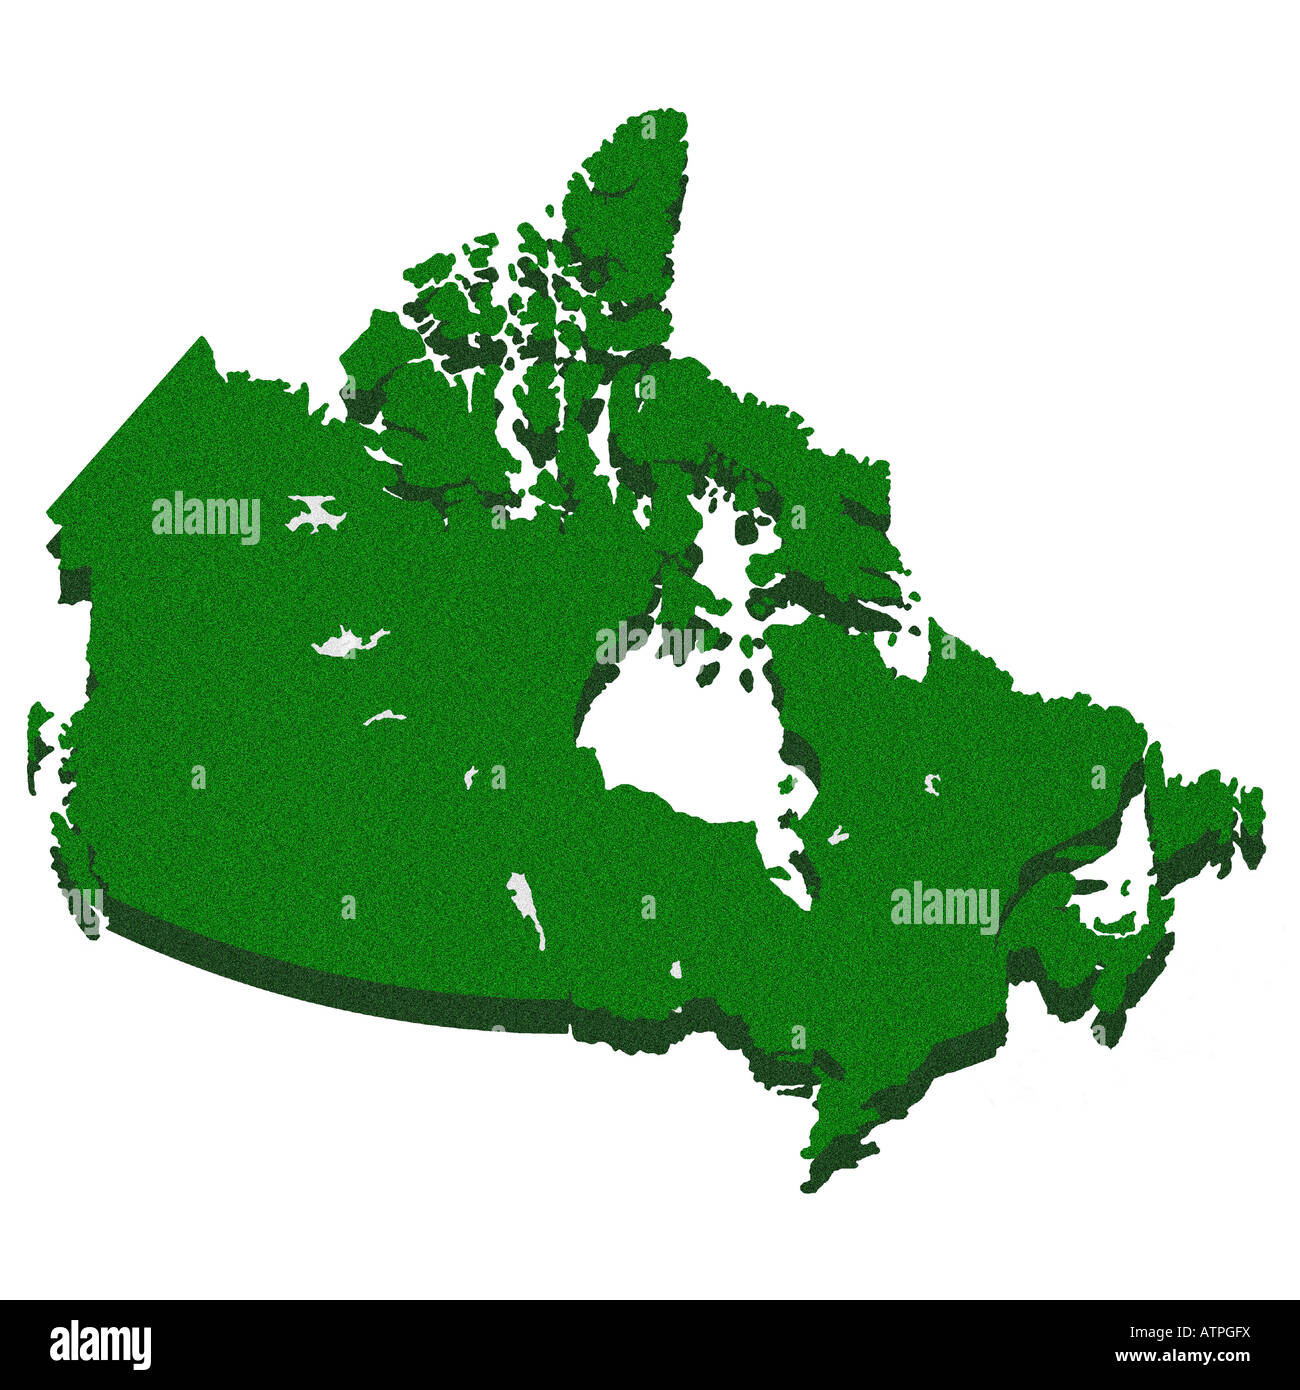 Outline map of Canada Stock Photo: 16369213 - Alamy on physical map of canada, detailed map of canada, physical features of canada, blank map of canada, major languages of canada, isoline map of canada, population pyramid of canada, trace map of canada, map of us and canada, labeled map of canada, climate map of canada, time map of canada, national symbols of canada, airport map of canada, resource map of canada, solid map of canada, open map of canada, large map of canada, identify map of canada, simple map of canada,